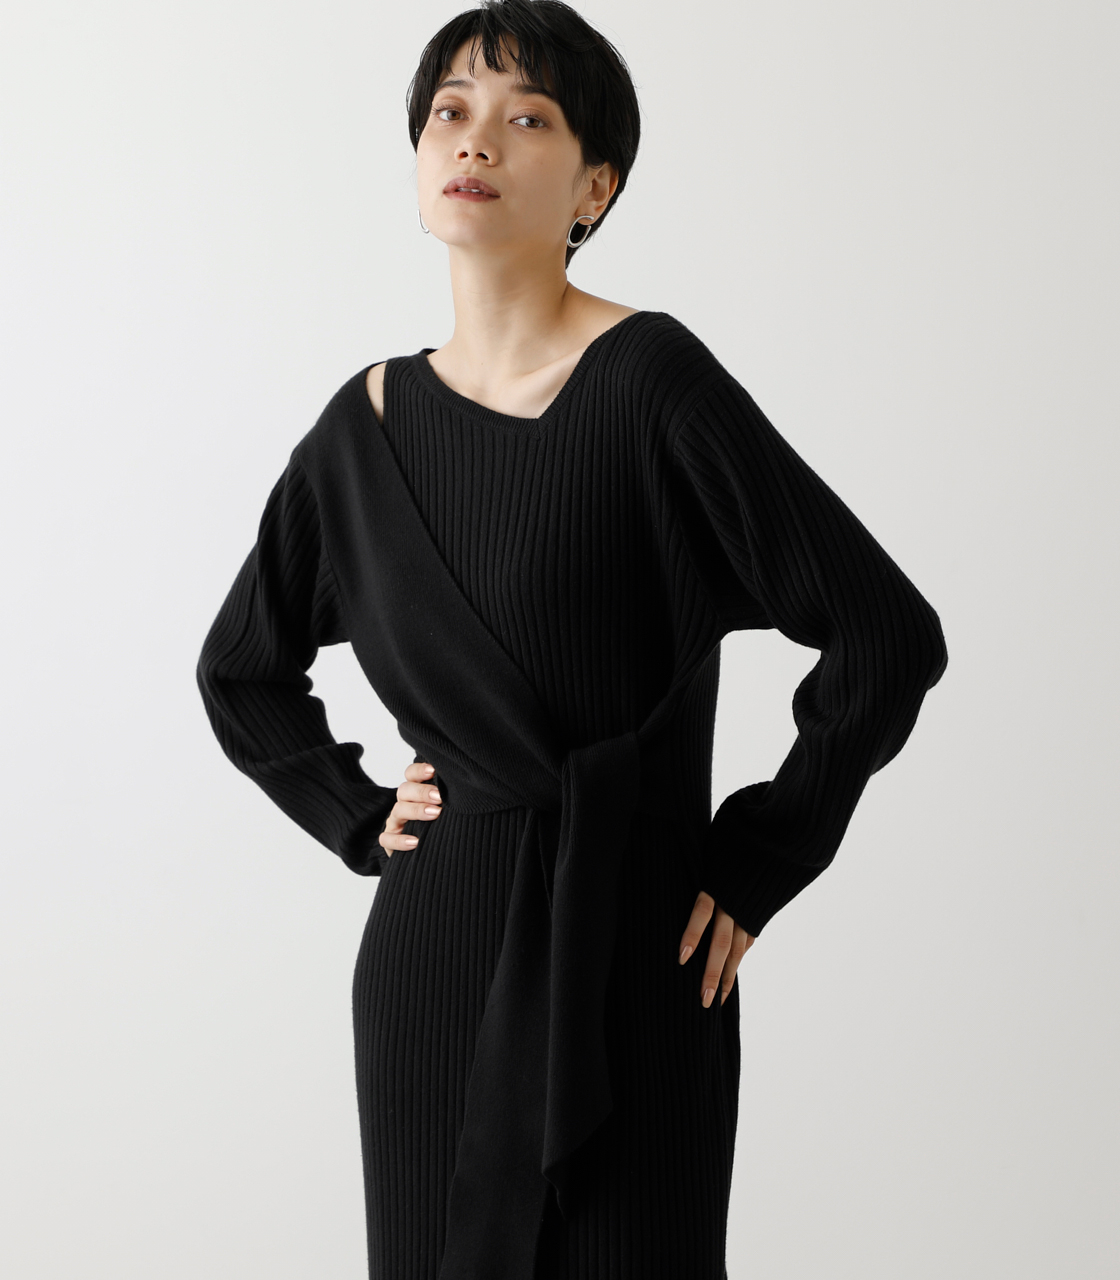 FRONT LINK ASYMMETRY KNIT OP/フロントリンクアシンメトリーニットワンピース【MOOK53掲載 90004】 詳細画像 BLK 2